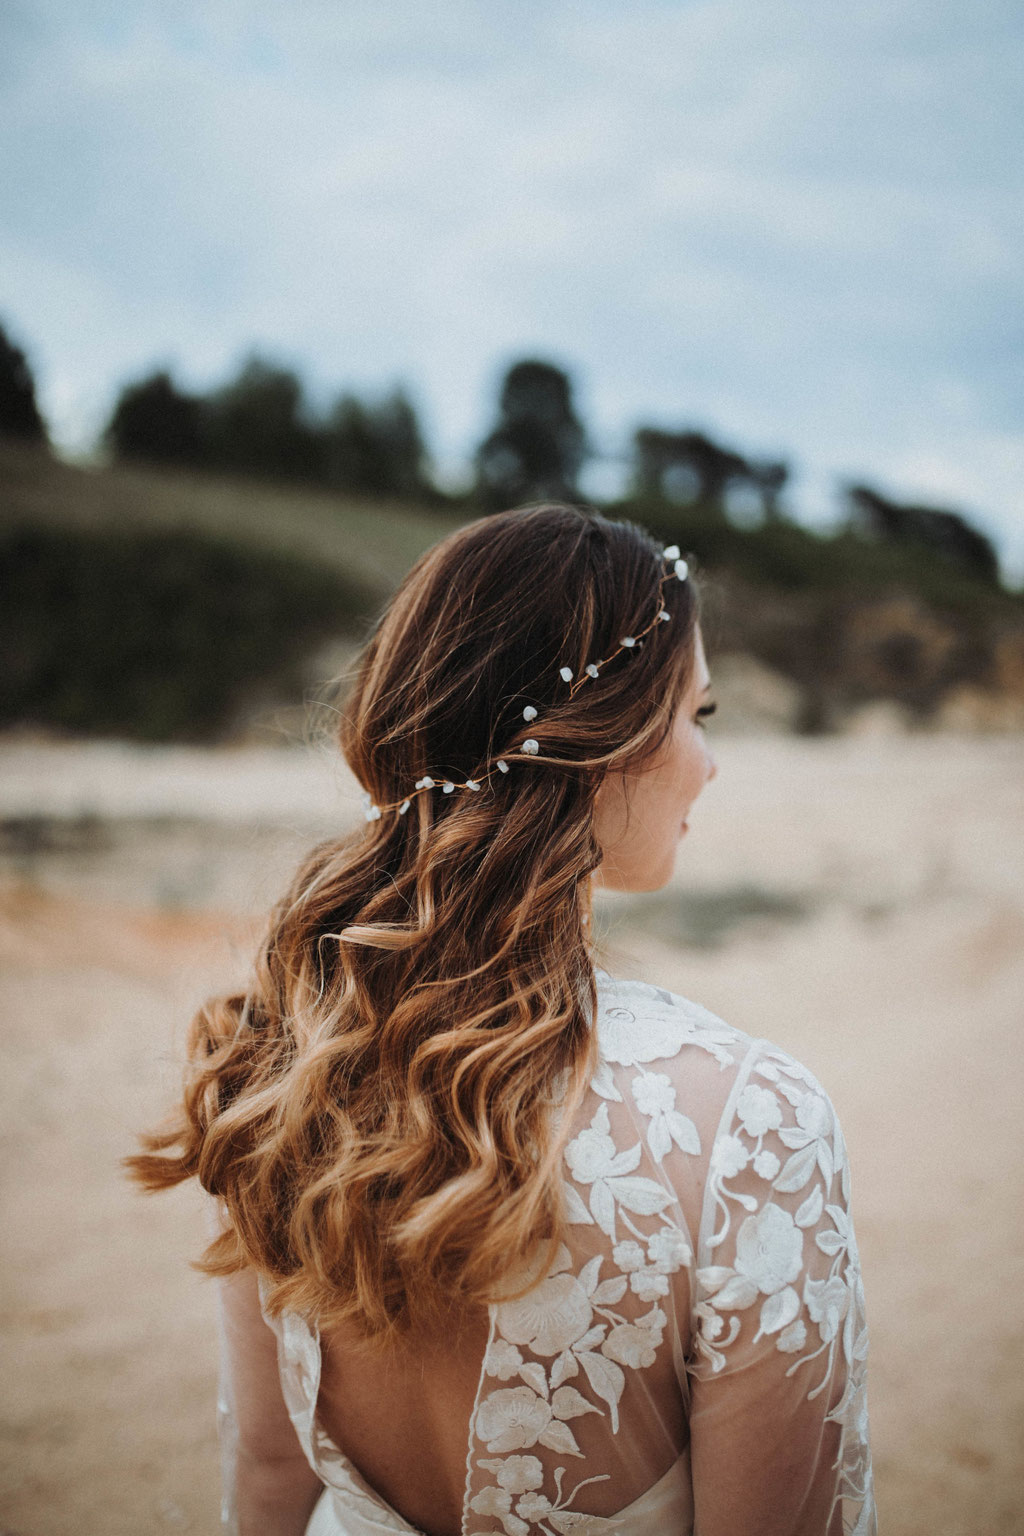 Headband with Moonstone - Photo by Elena Peters Fotografie